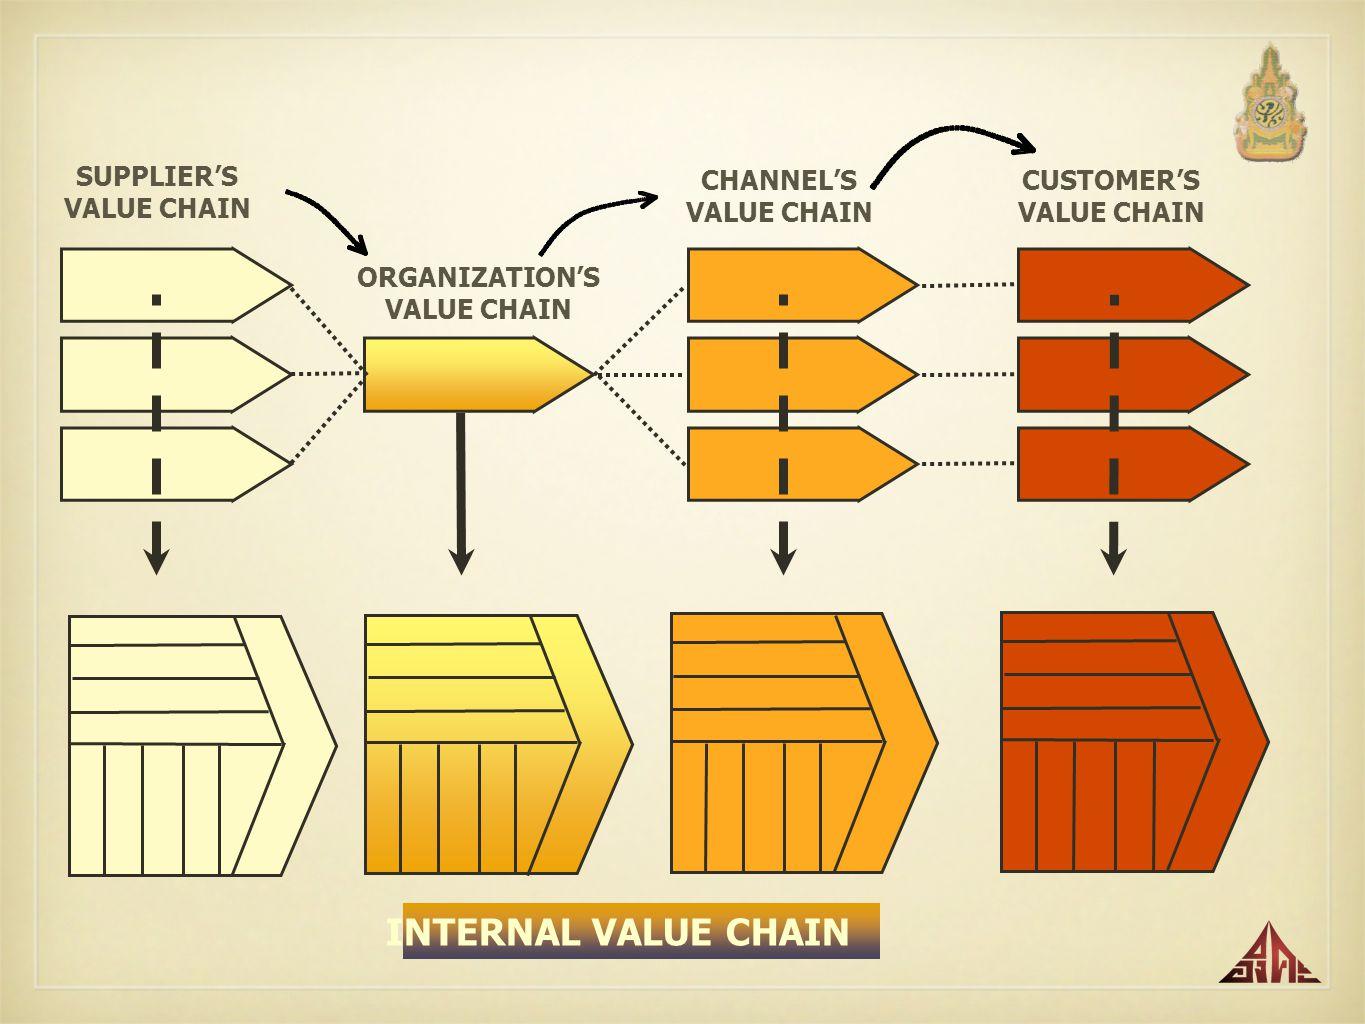 INTERNAL VALUE CHAIN SUPPLIER'S VALUE CHAIN CHANNEL'S VALUE CHAIN